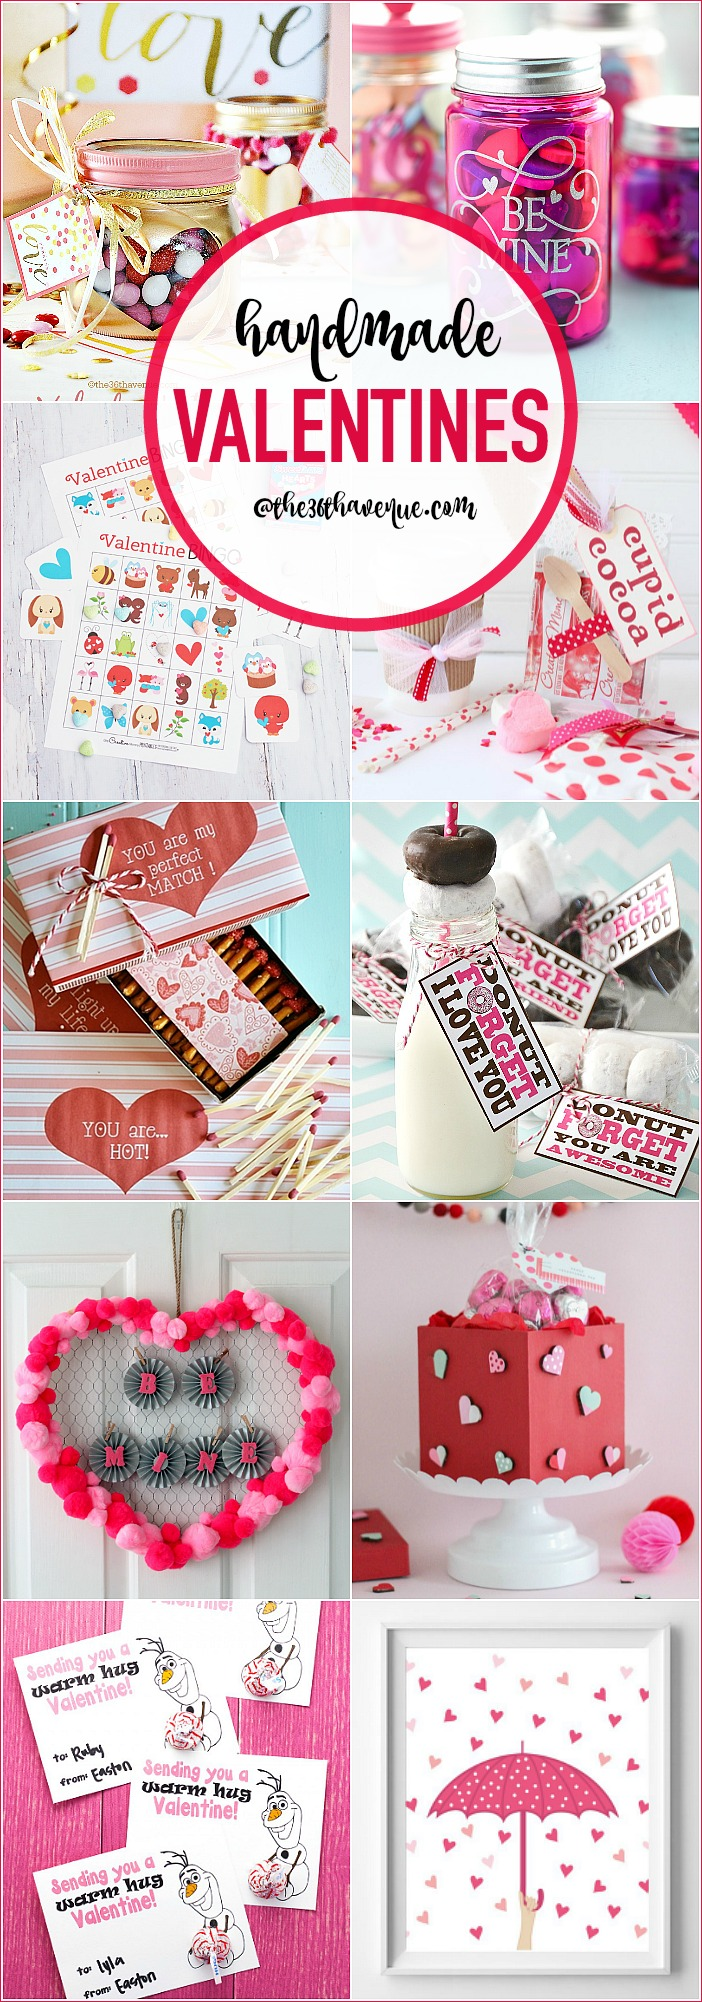 Adorable Handmade Valentines and DIY gift ideas for Valentine's Day. Cute handmade gifts  to share the love and show appreciation.